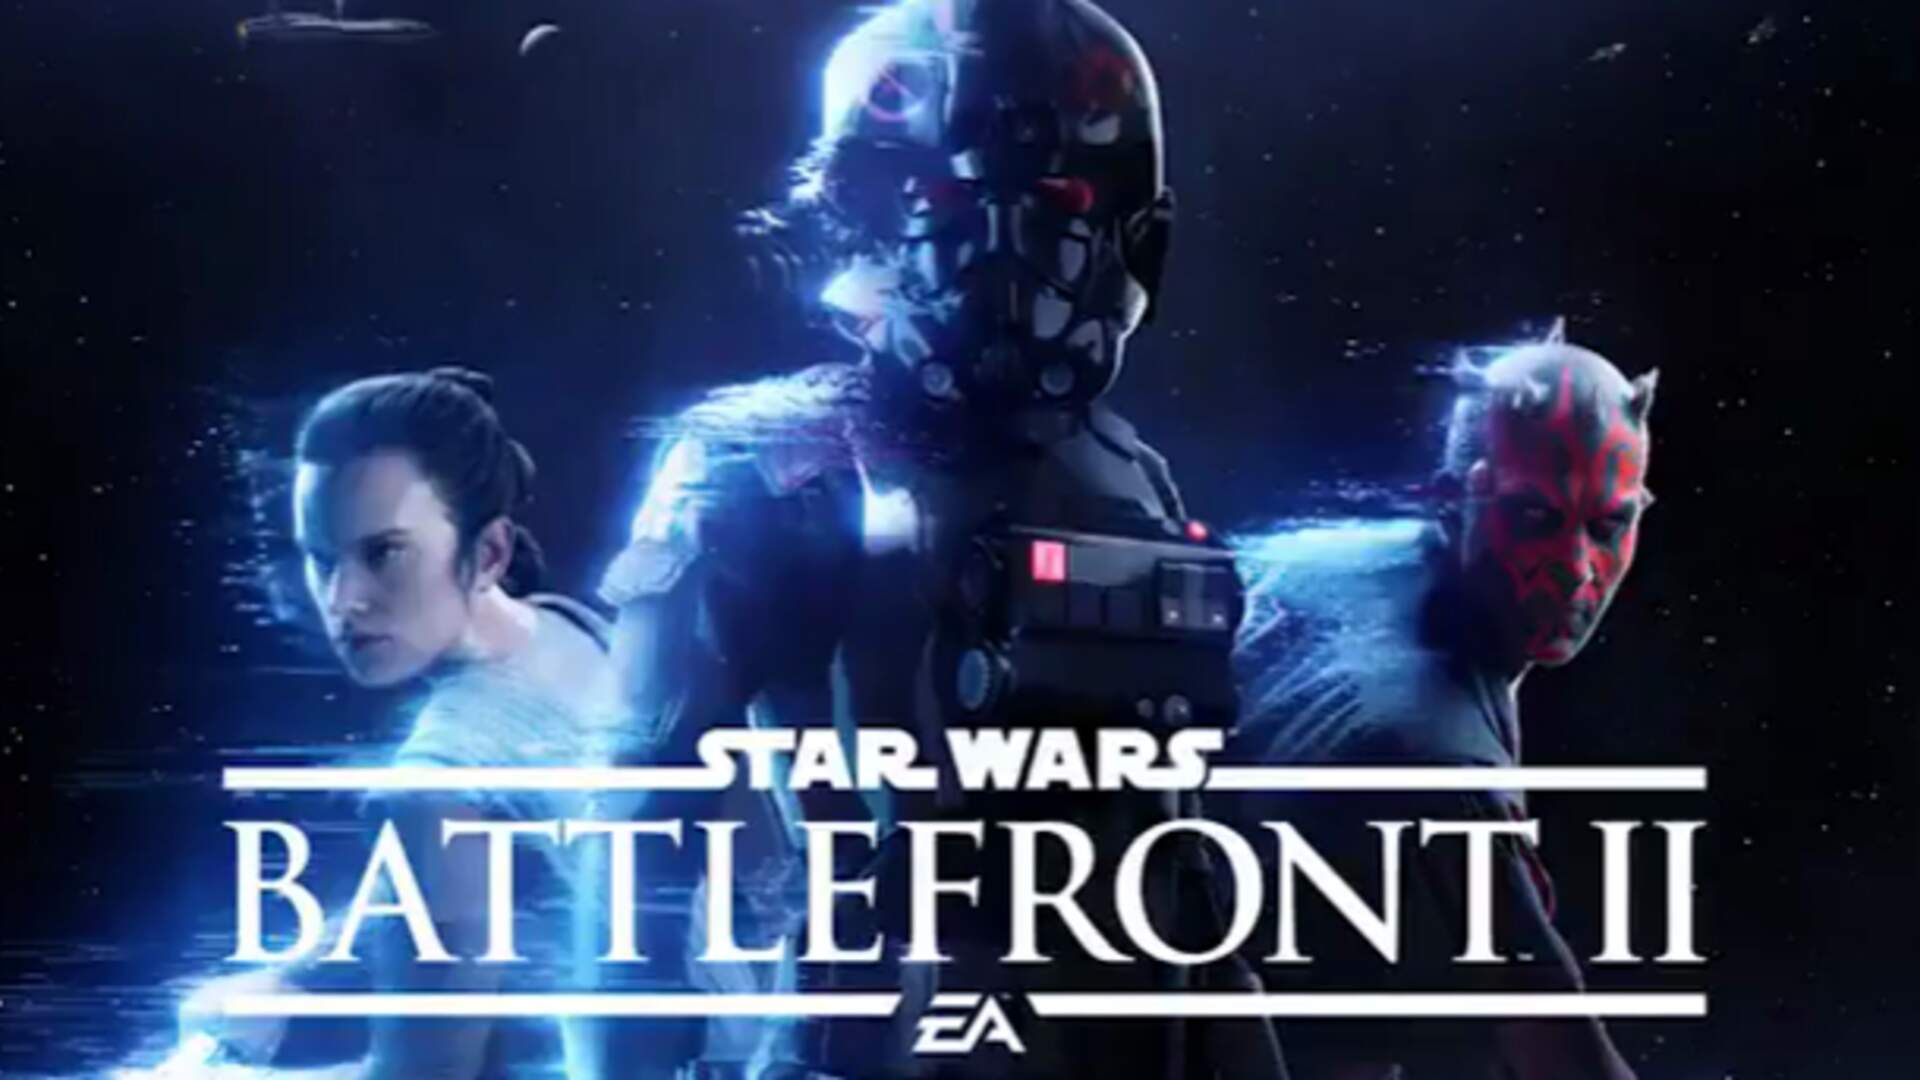 Star Wars Battlefront 2 Will Completely Remove Paid Loot Crates and Star Cards